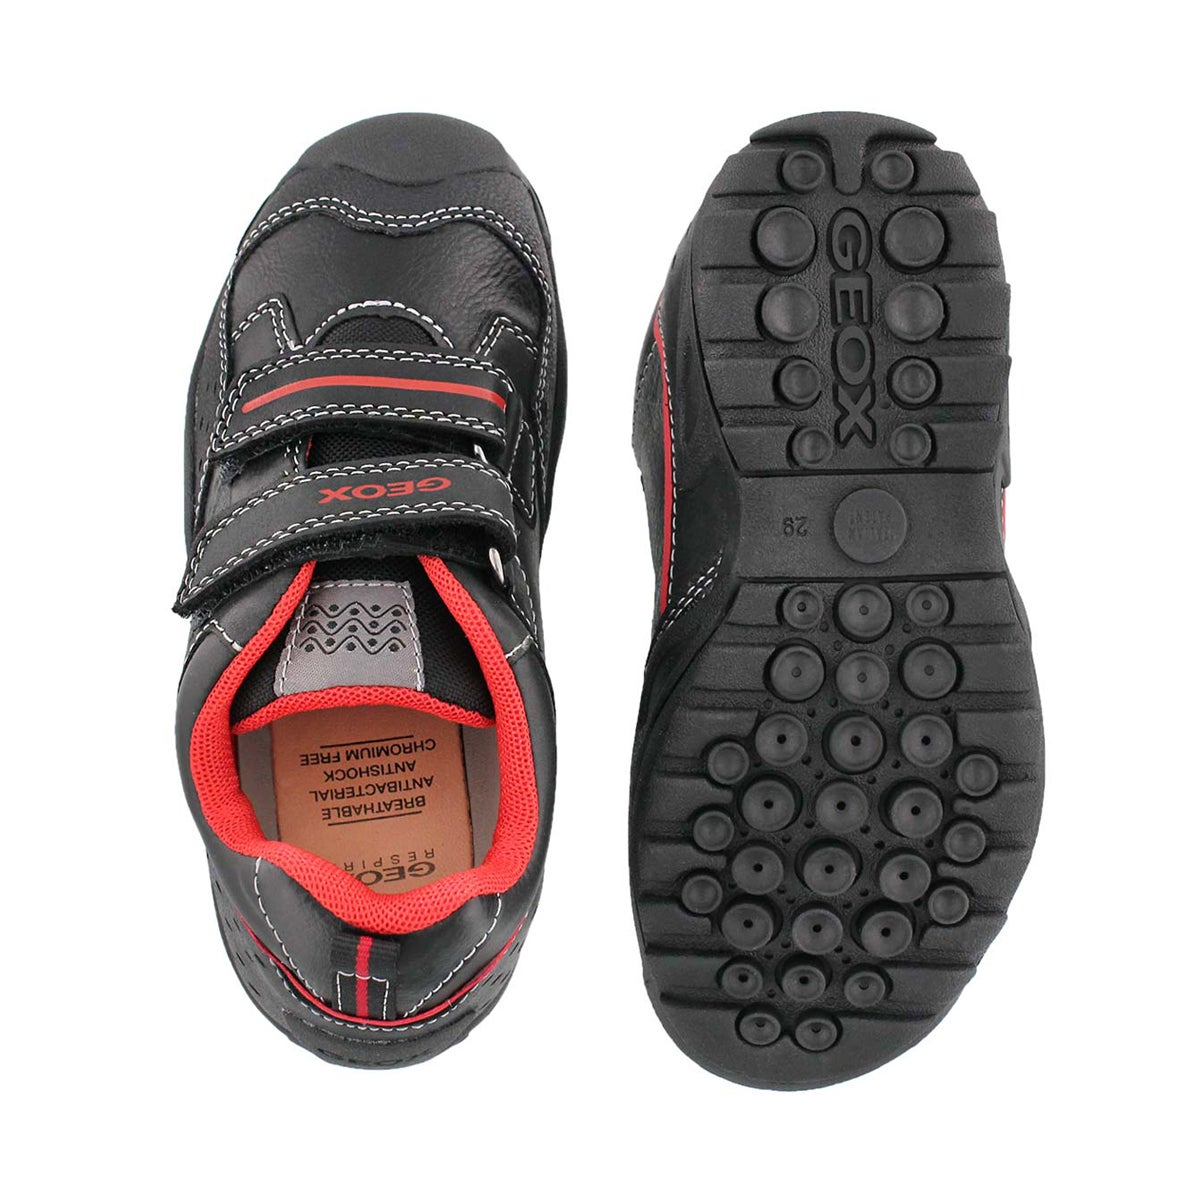 Bys New Savage blk/red 2 strap sneaker